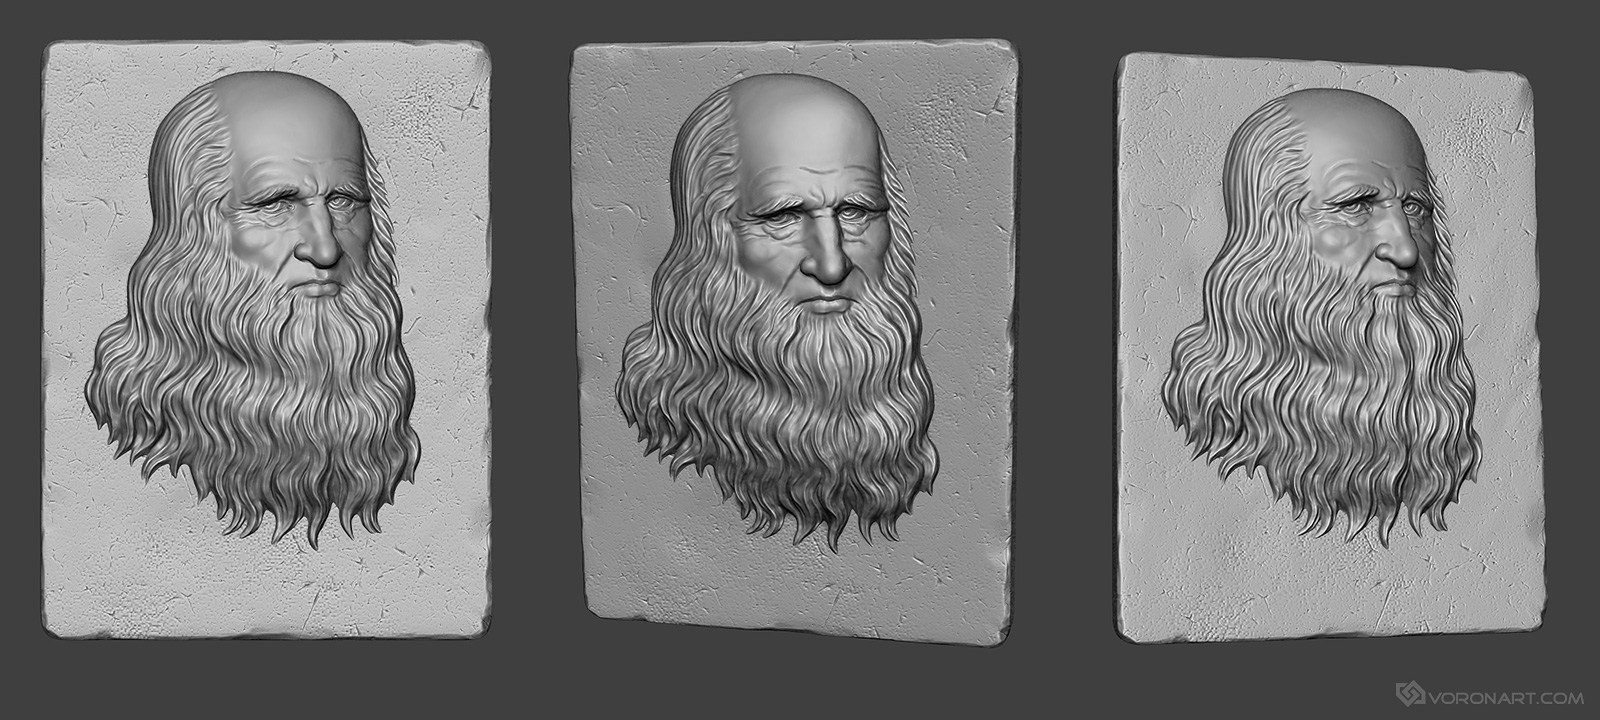 leonardo da vinci bas-relief. Portrait, high-poly 3d model